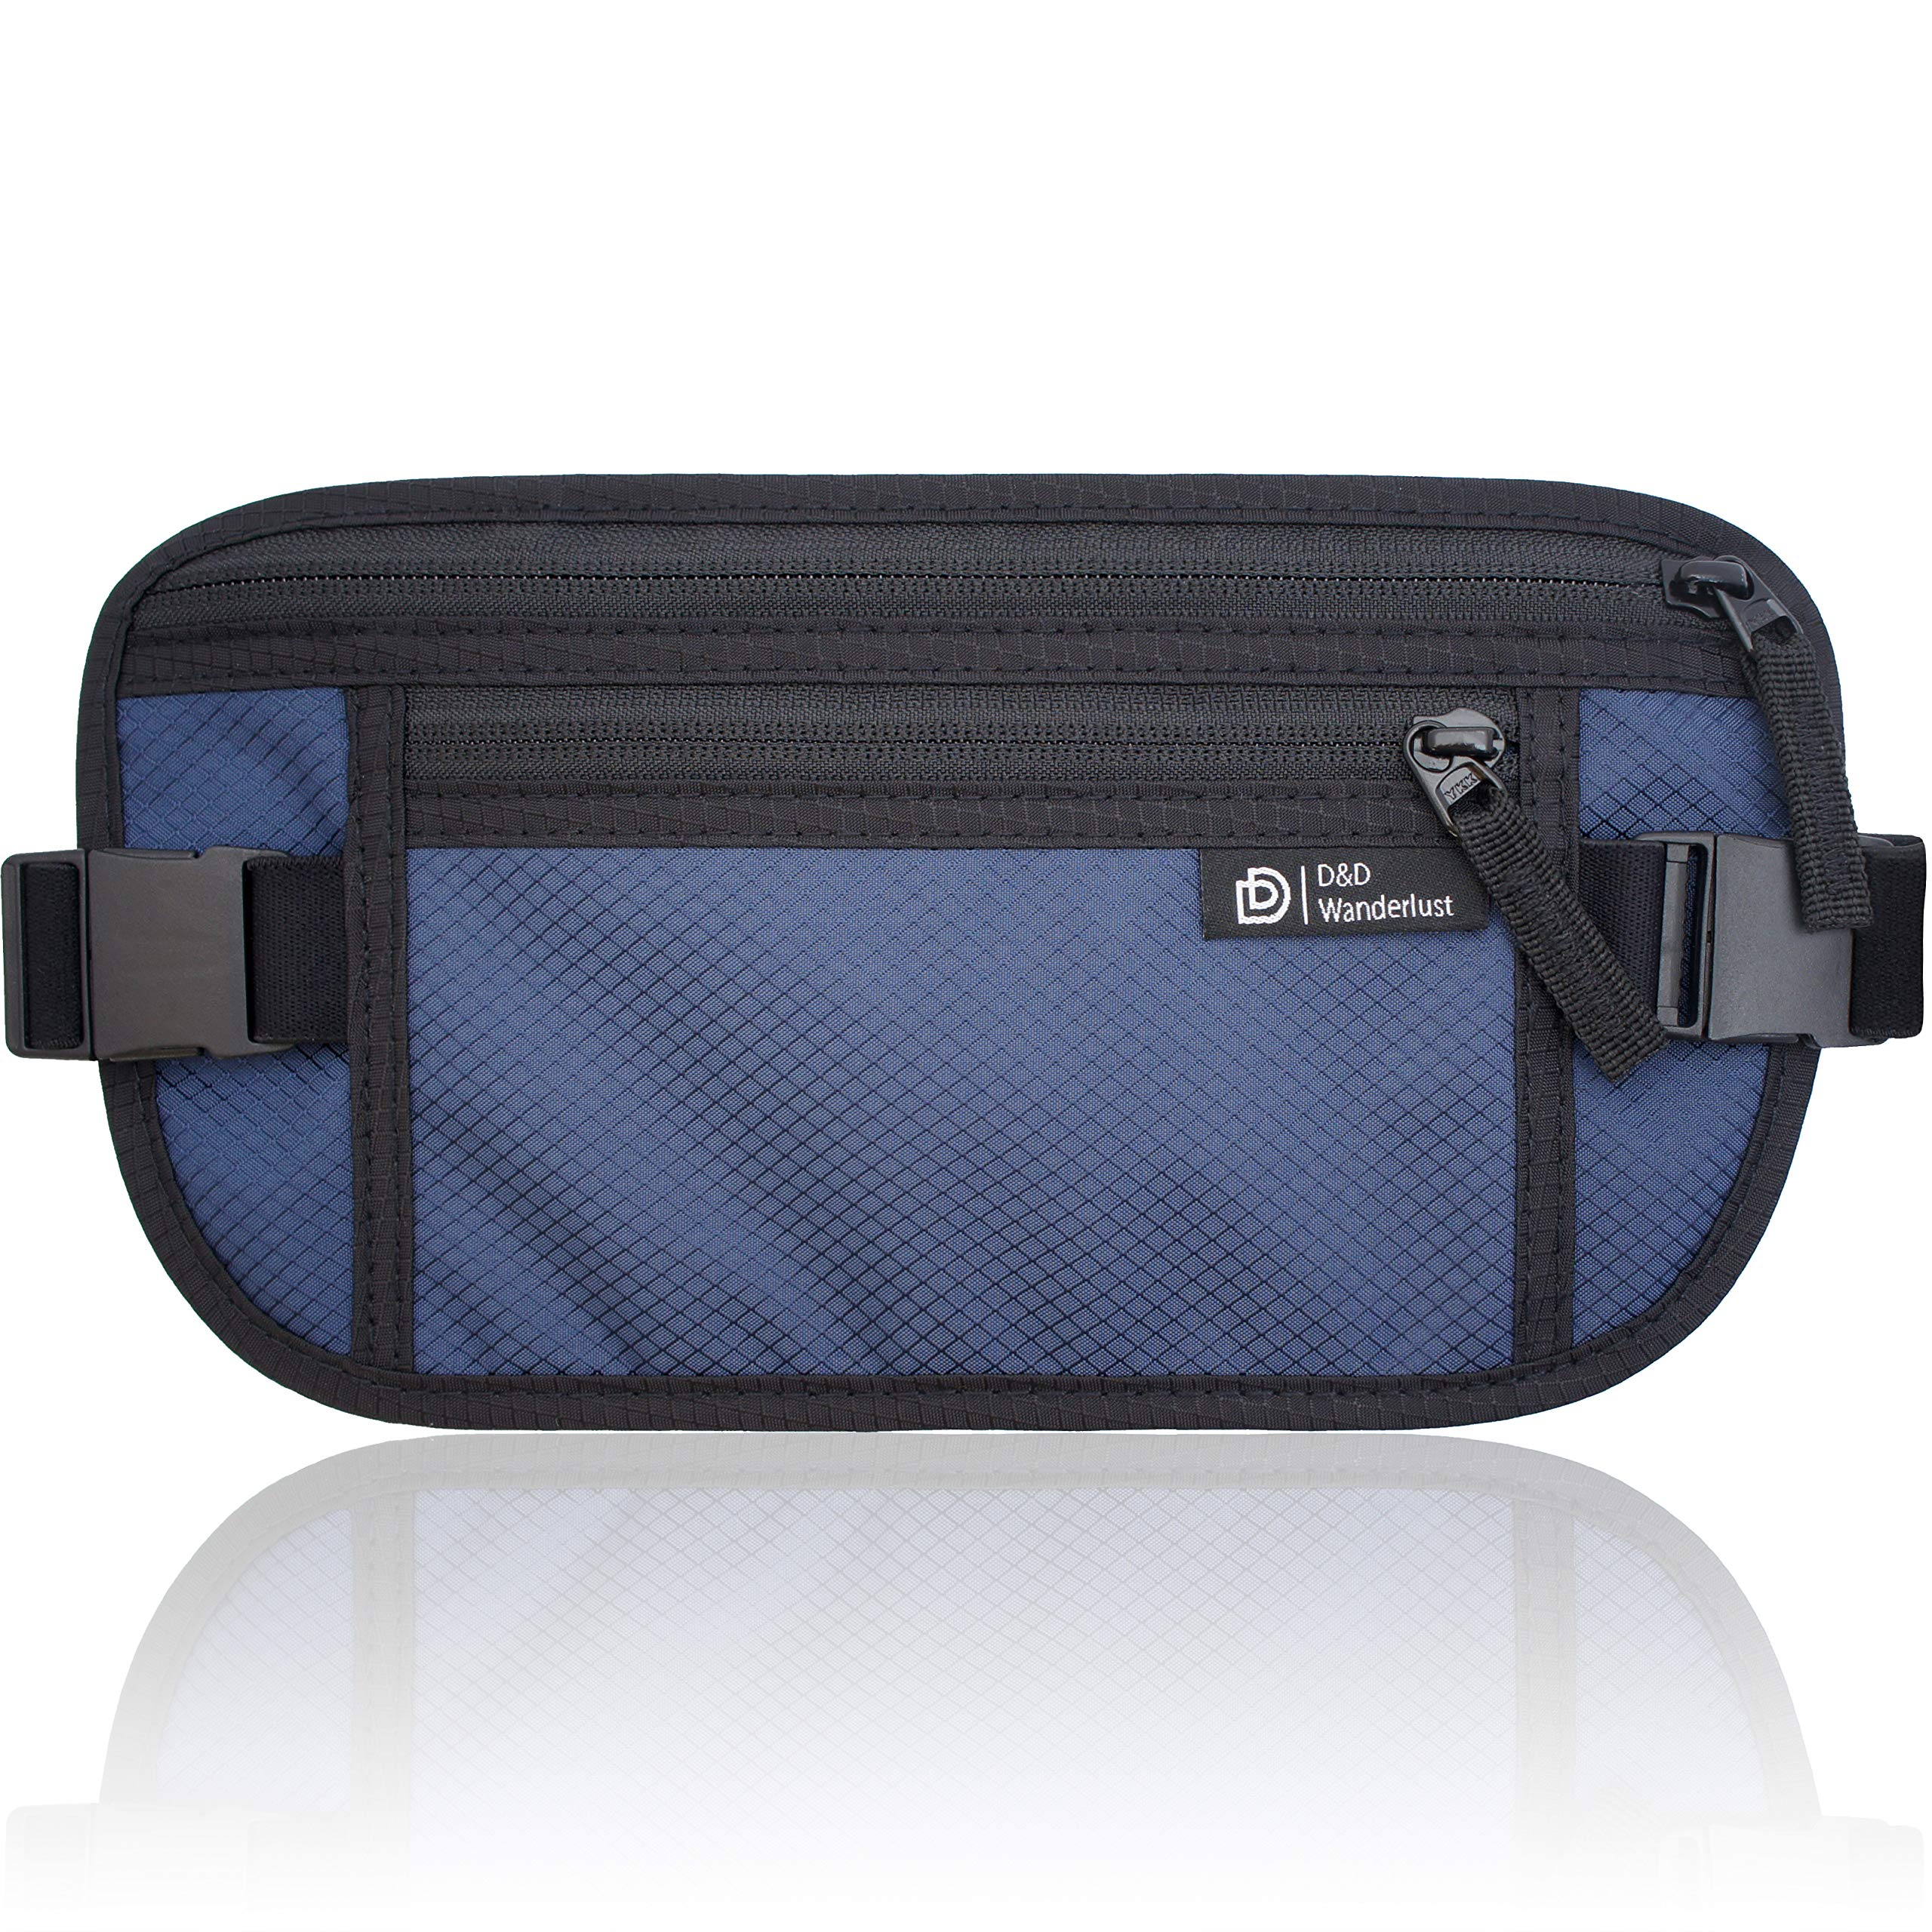 D&D RFID Blocking Money Belt for Travel - Waterproof Hidden Travel Wallet Waist Pouch for Men and Women – Free eBook by D&D Products (Image #1)